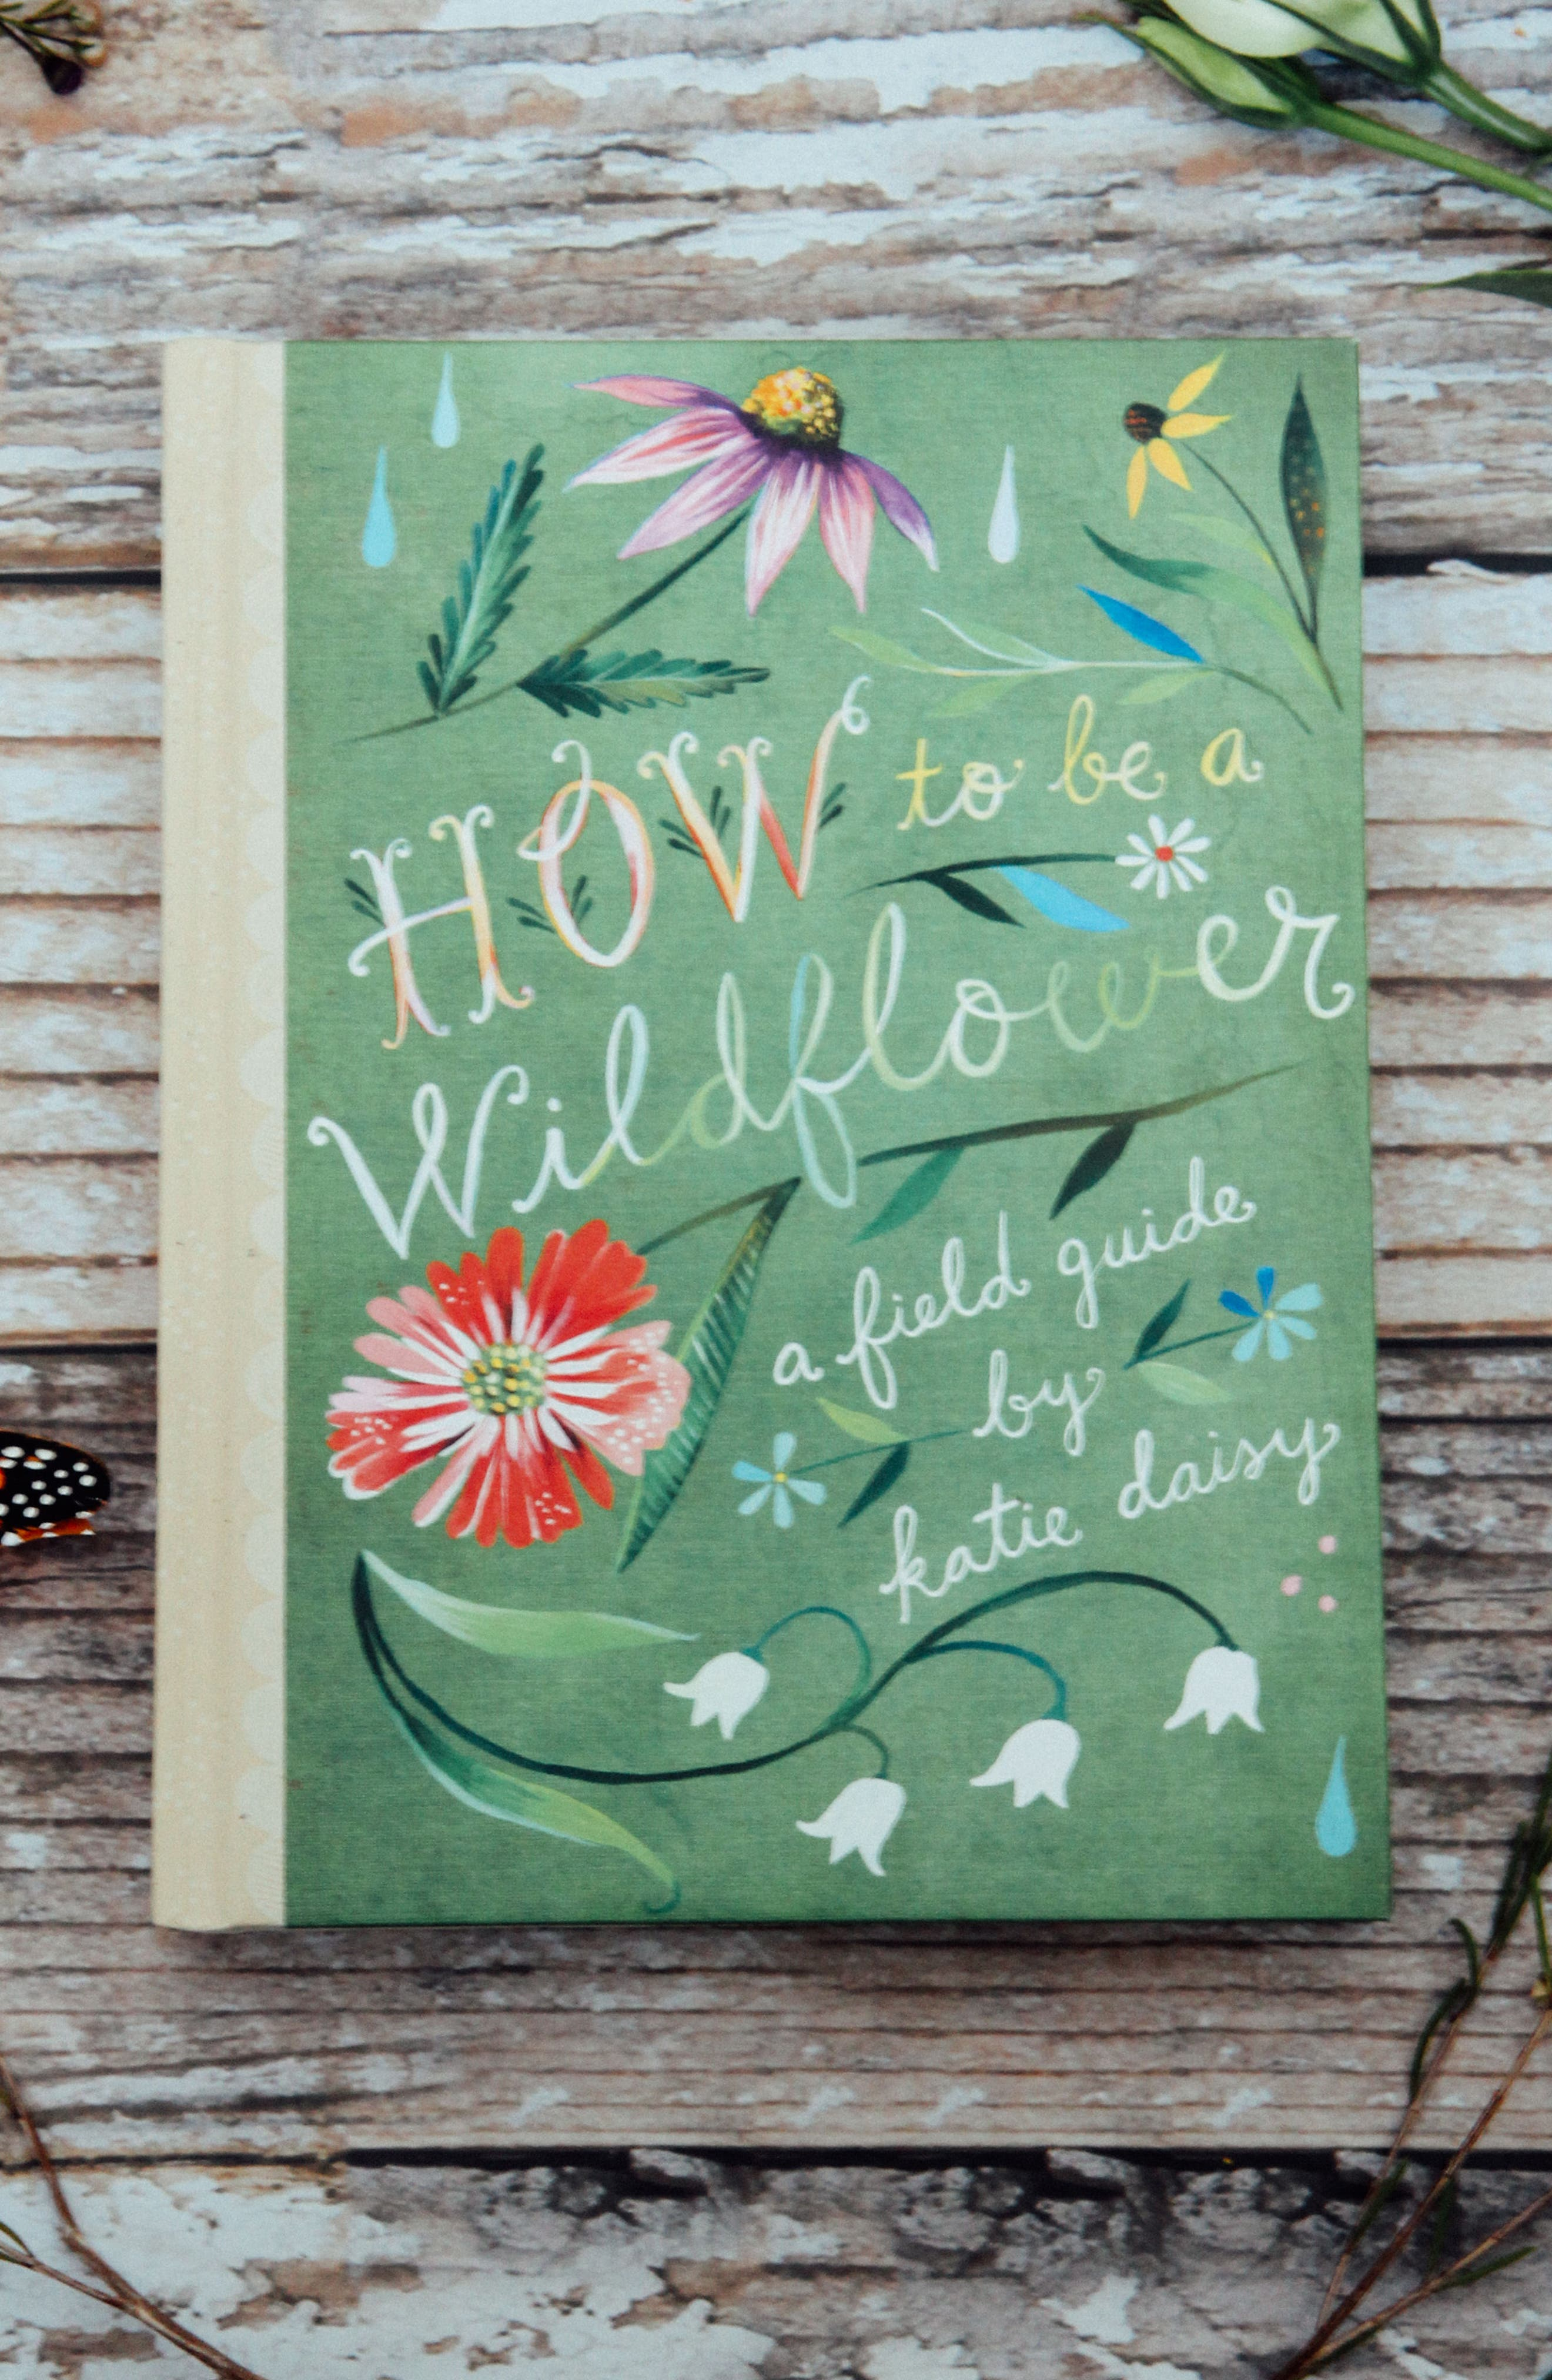 How To Be A Wildflower Book,                             Alternate thumbnail 3, color,                             300